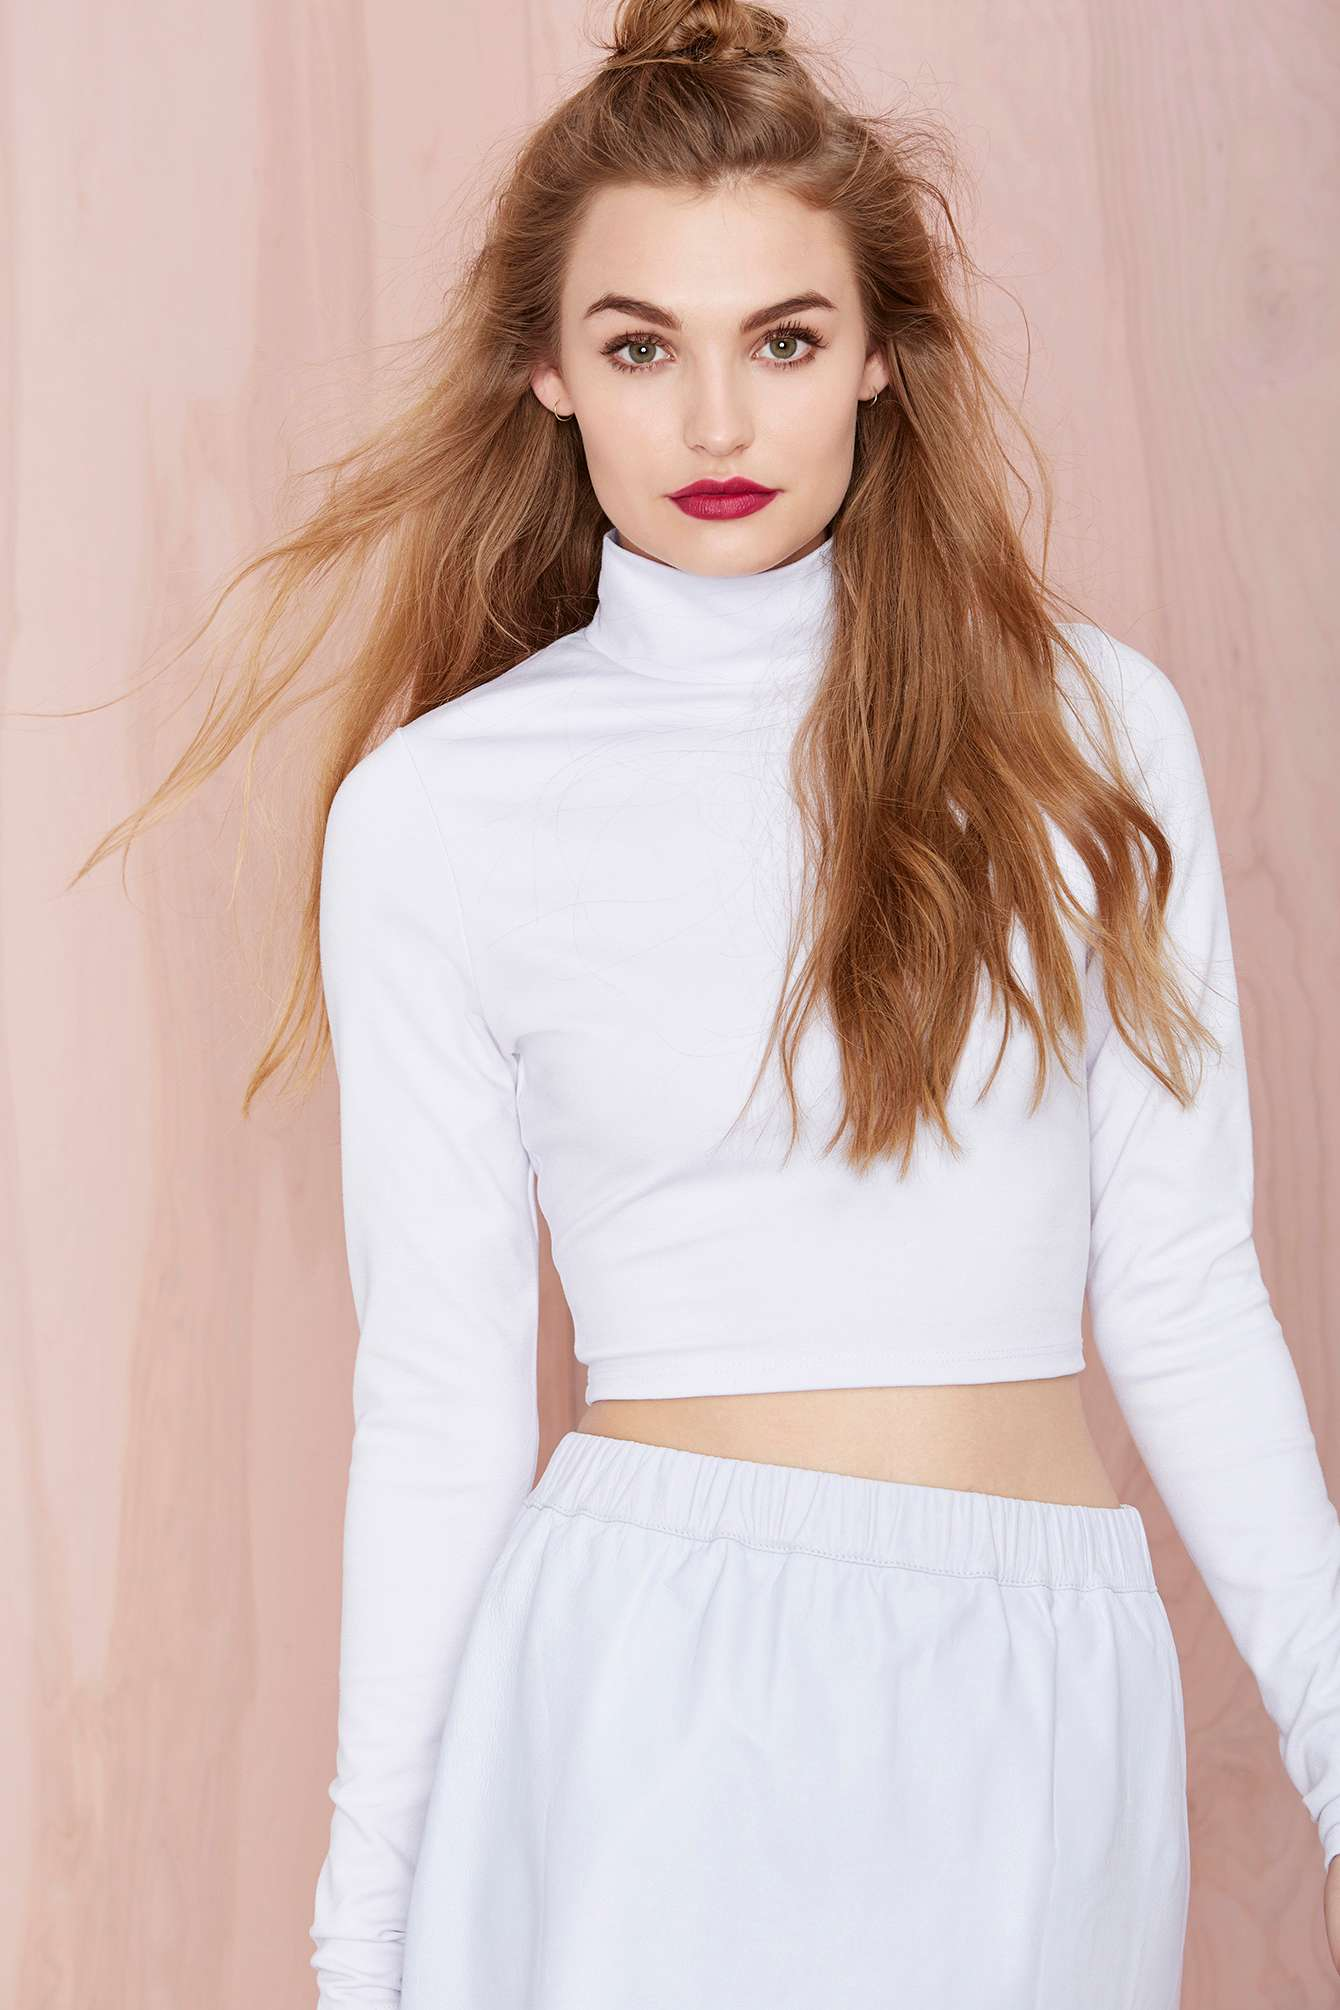 Nasty gal mock my day top